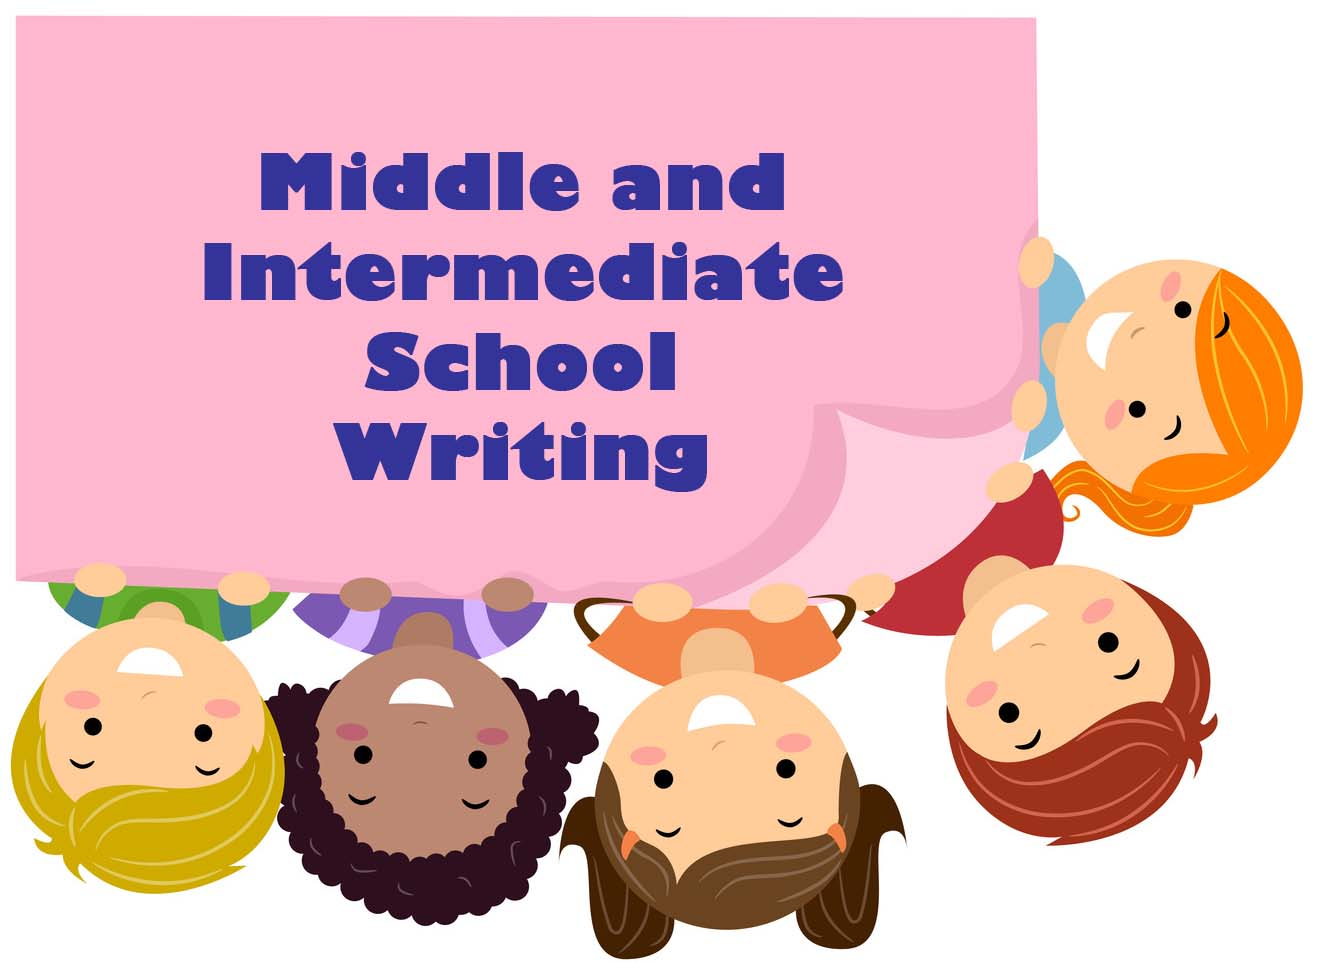 Middle and Intermediate School Writing